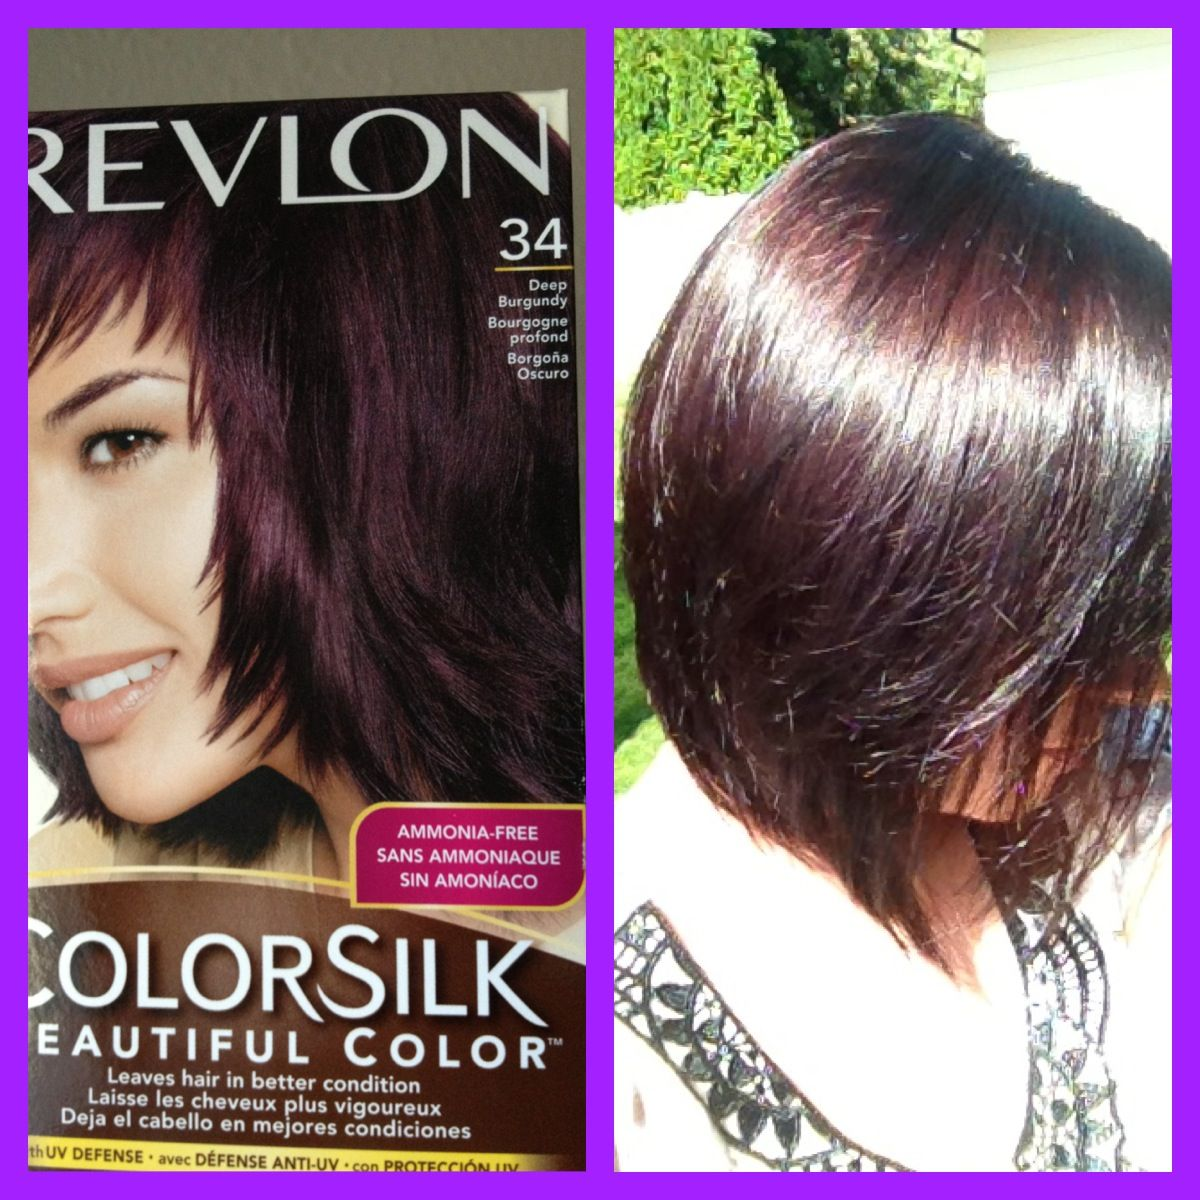 Revlon 34 Deep Burgundy Used On Virgin Medium Brown Hair It Was